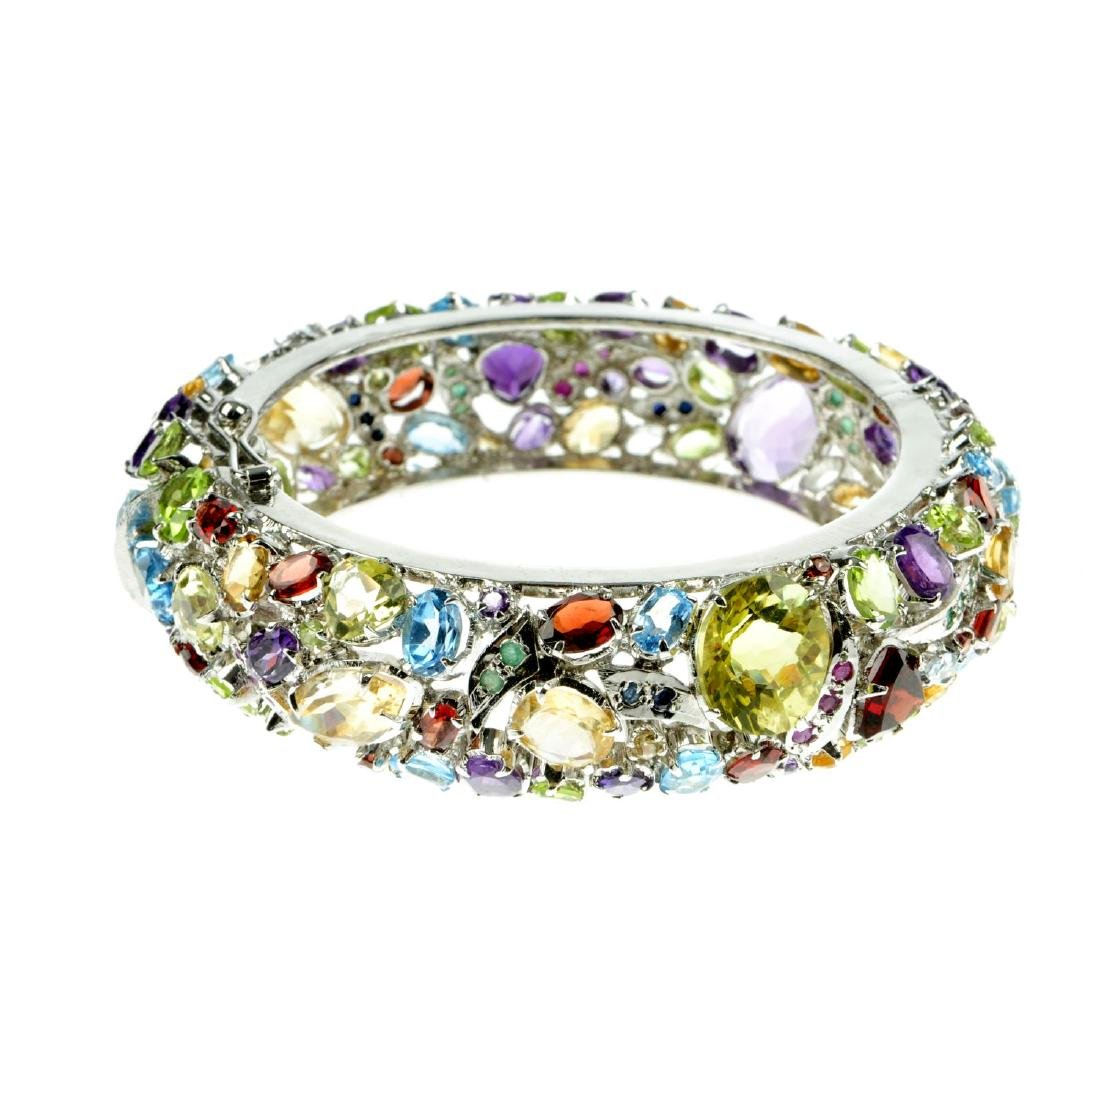 A gem-set bangle. The hinged bangle set with vari-shape